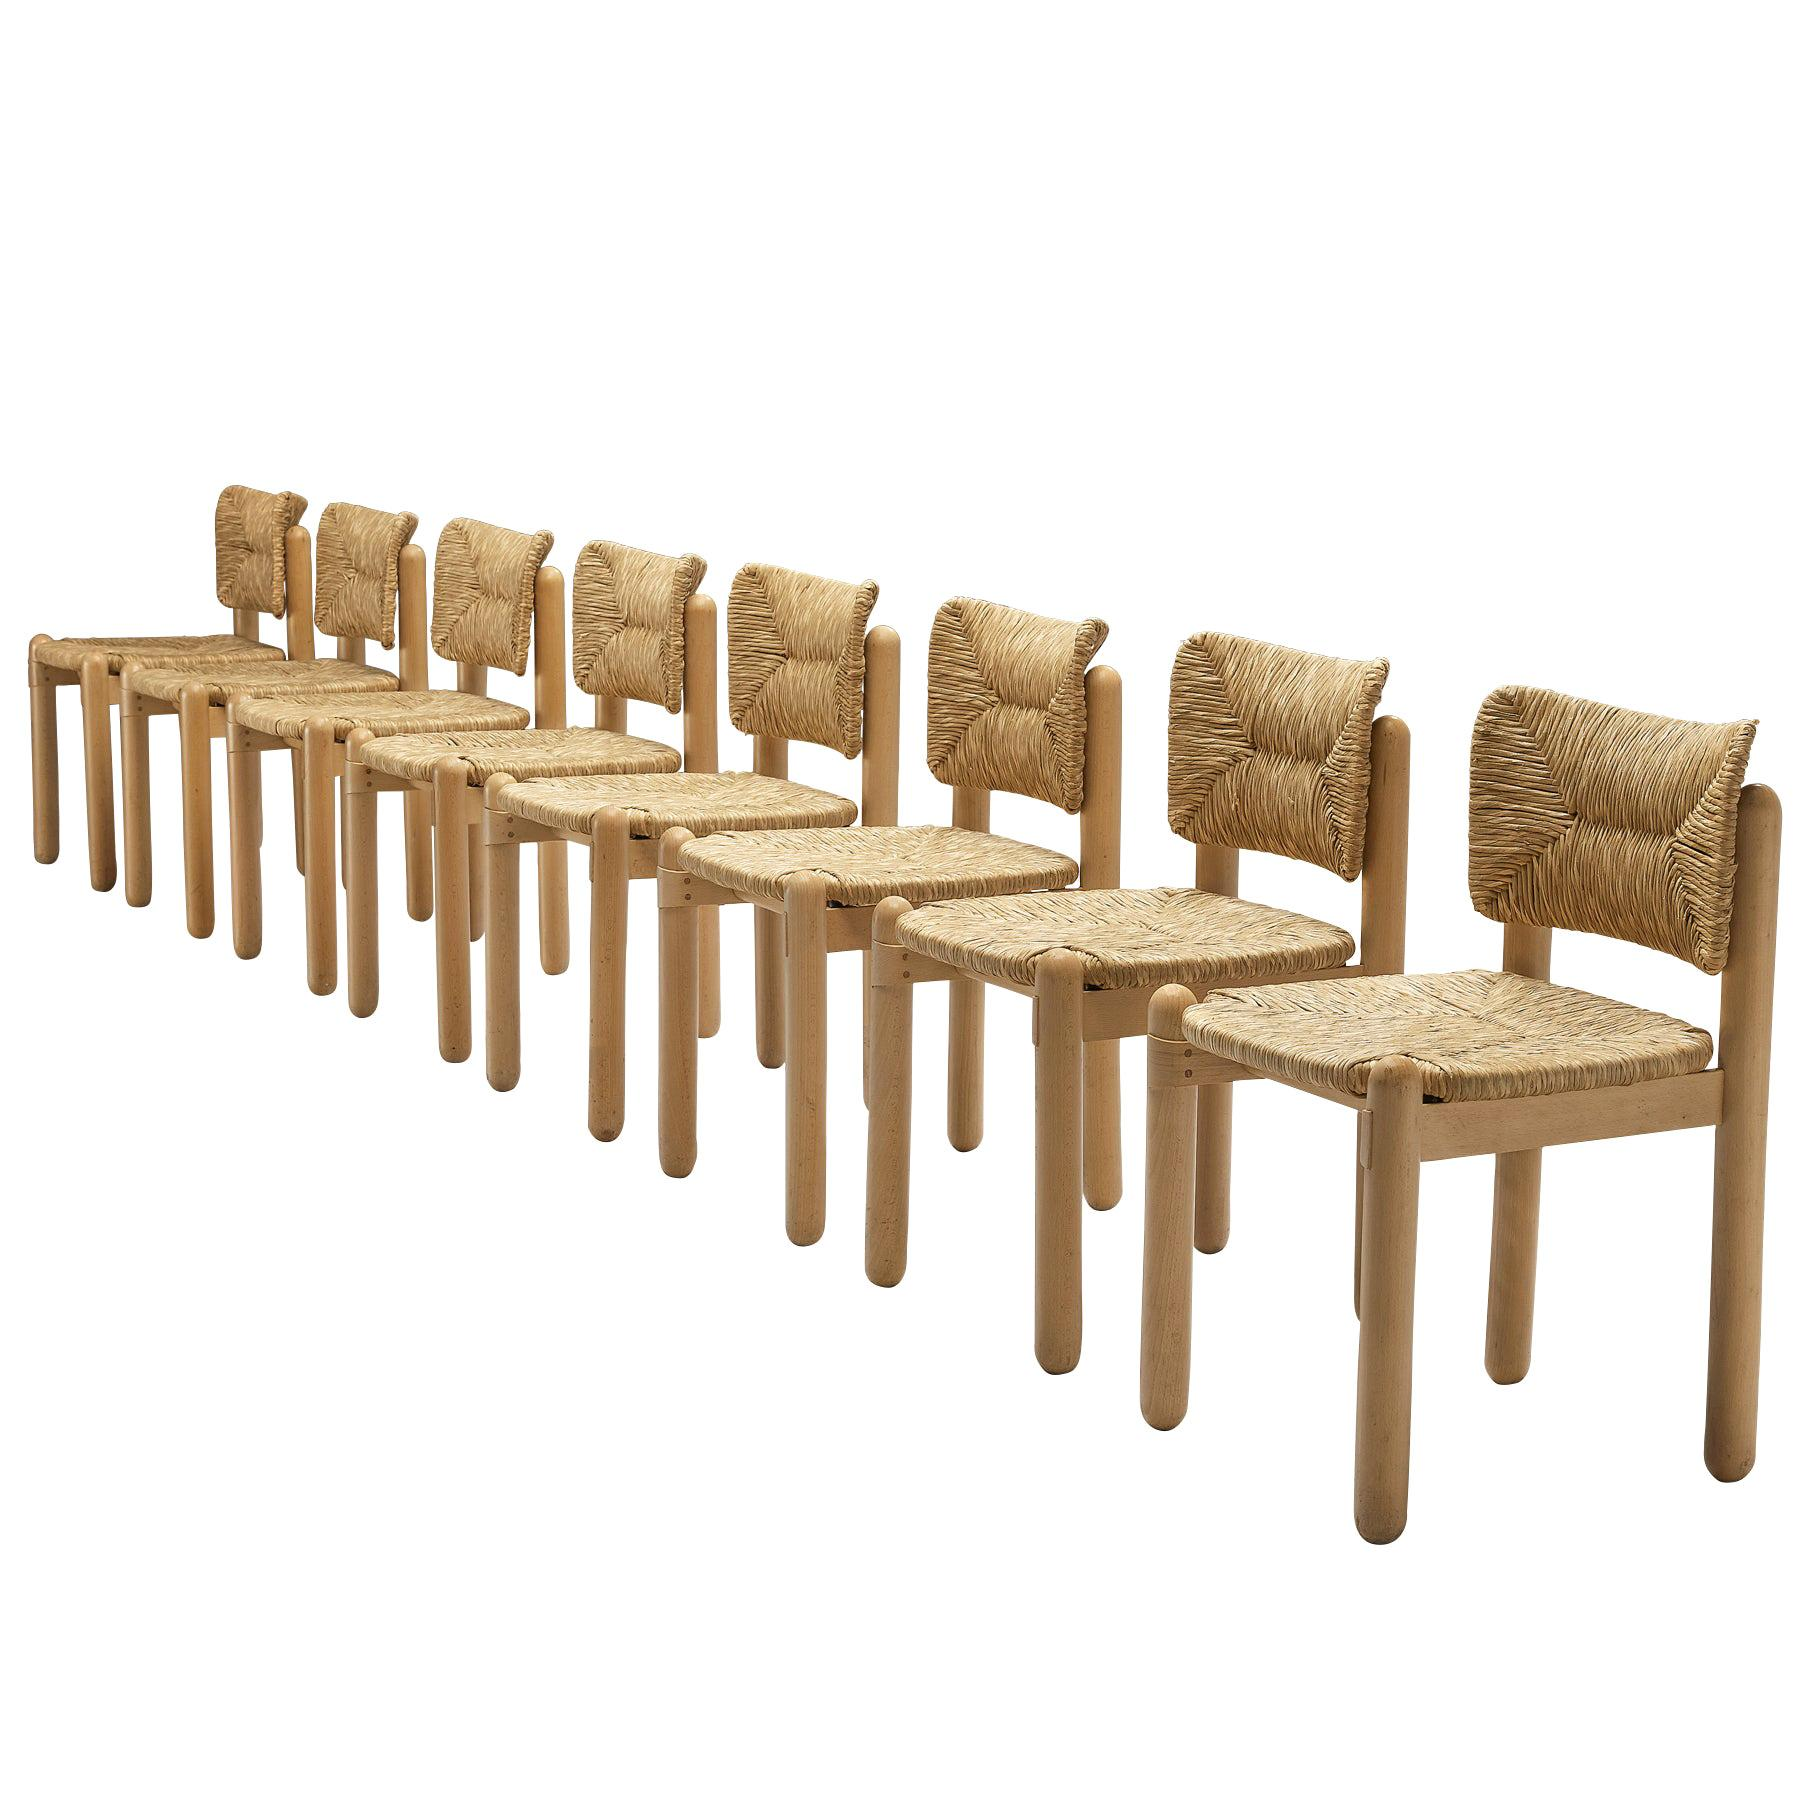 Set of Eight Italian Dining Chairs in Beech and Straw